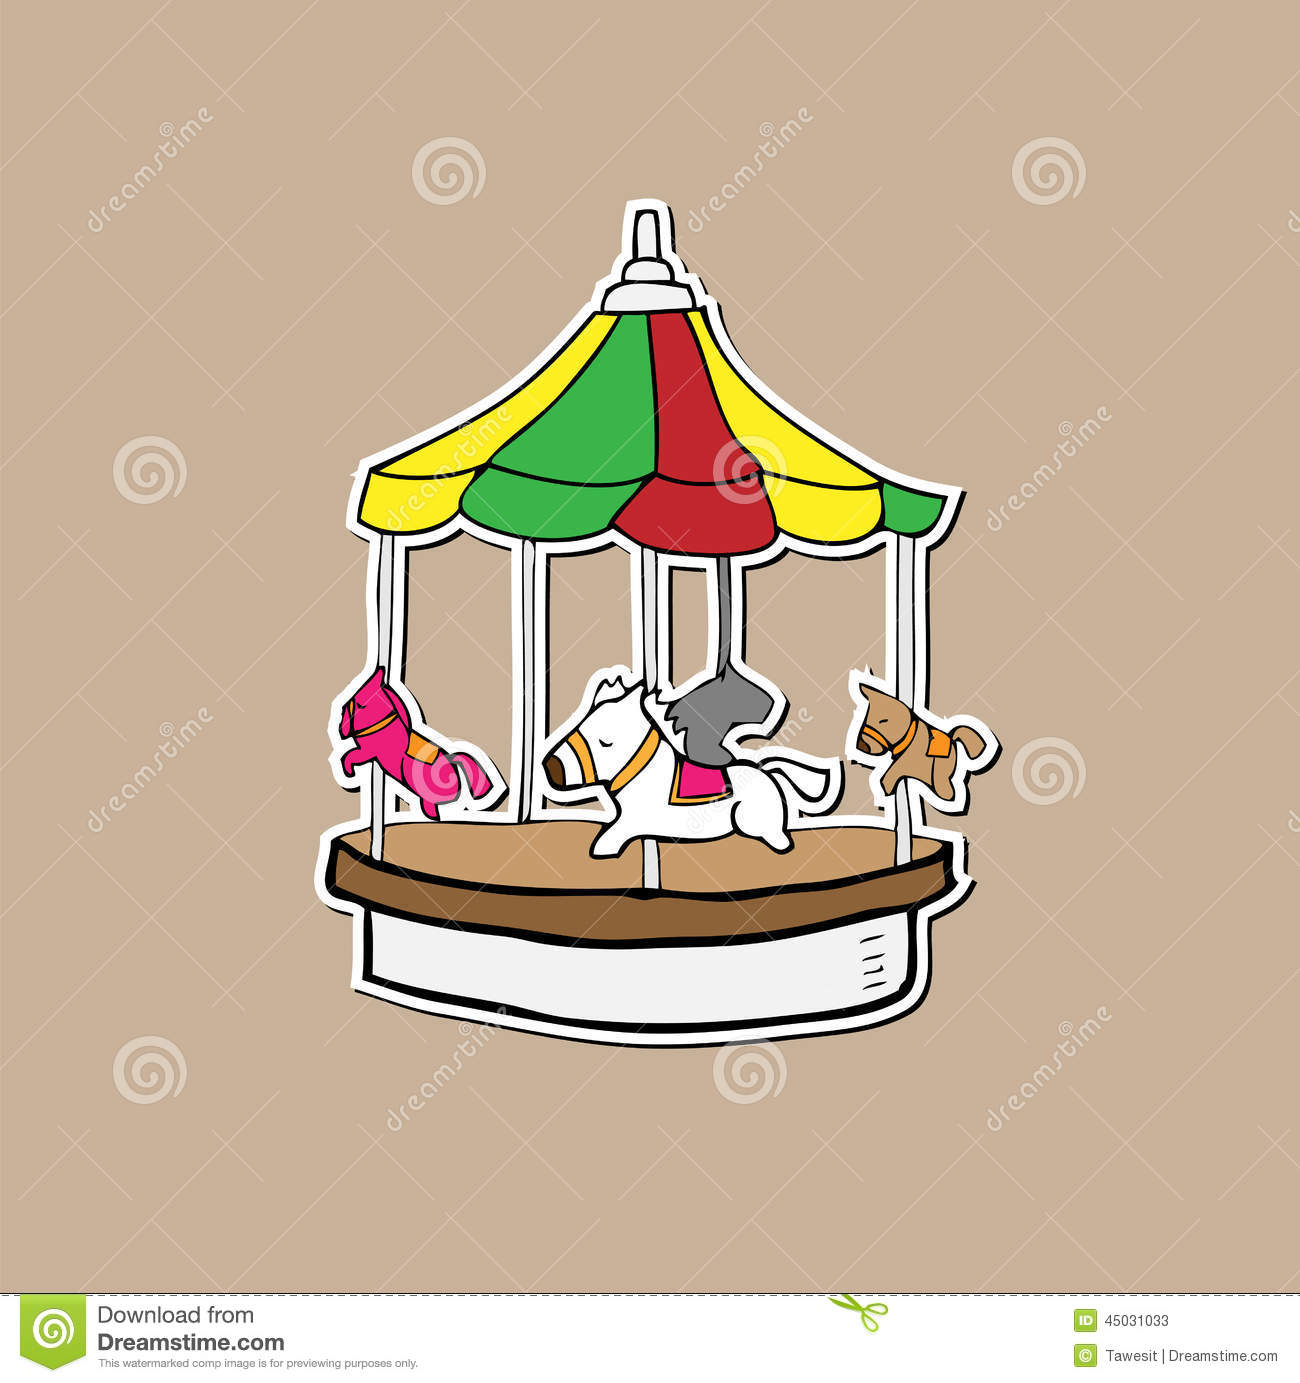 Merry Go Round Amusement Playground Stock Vector - Image ...